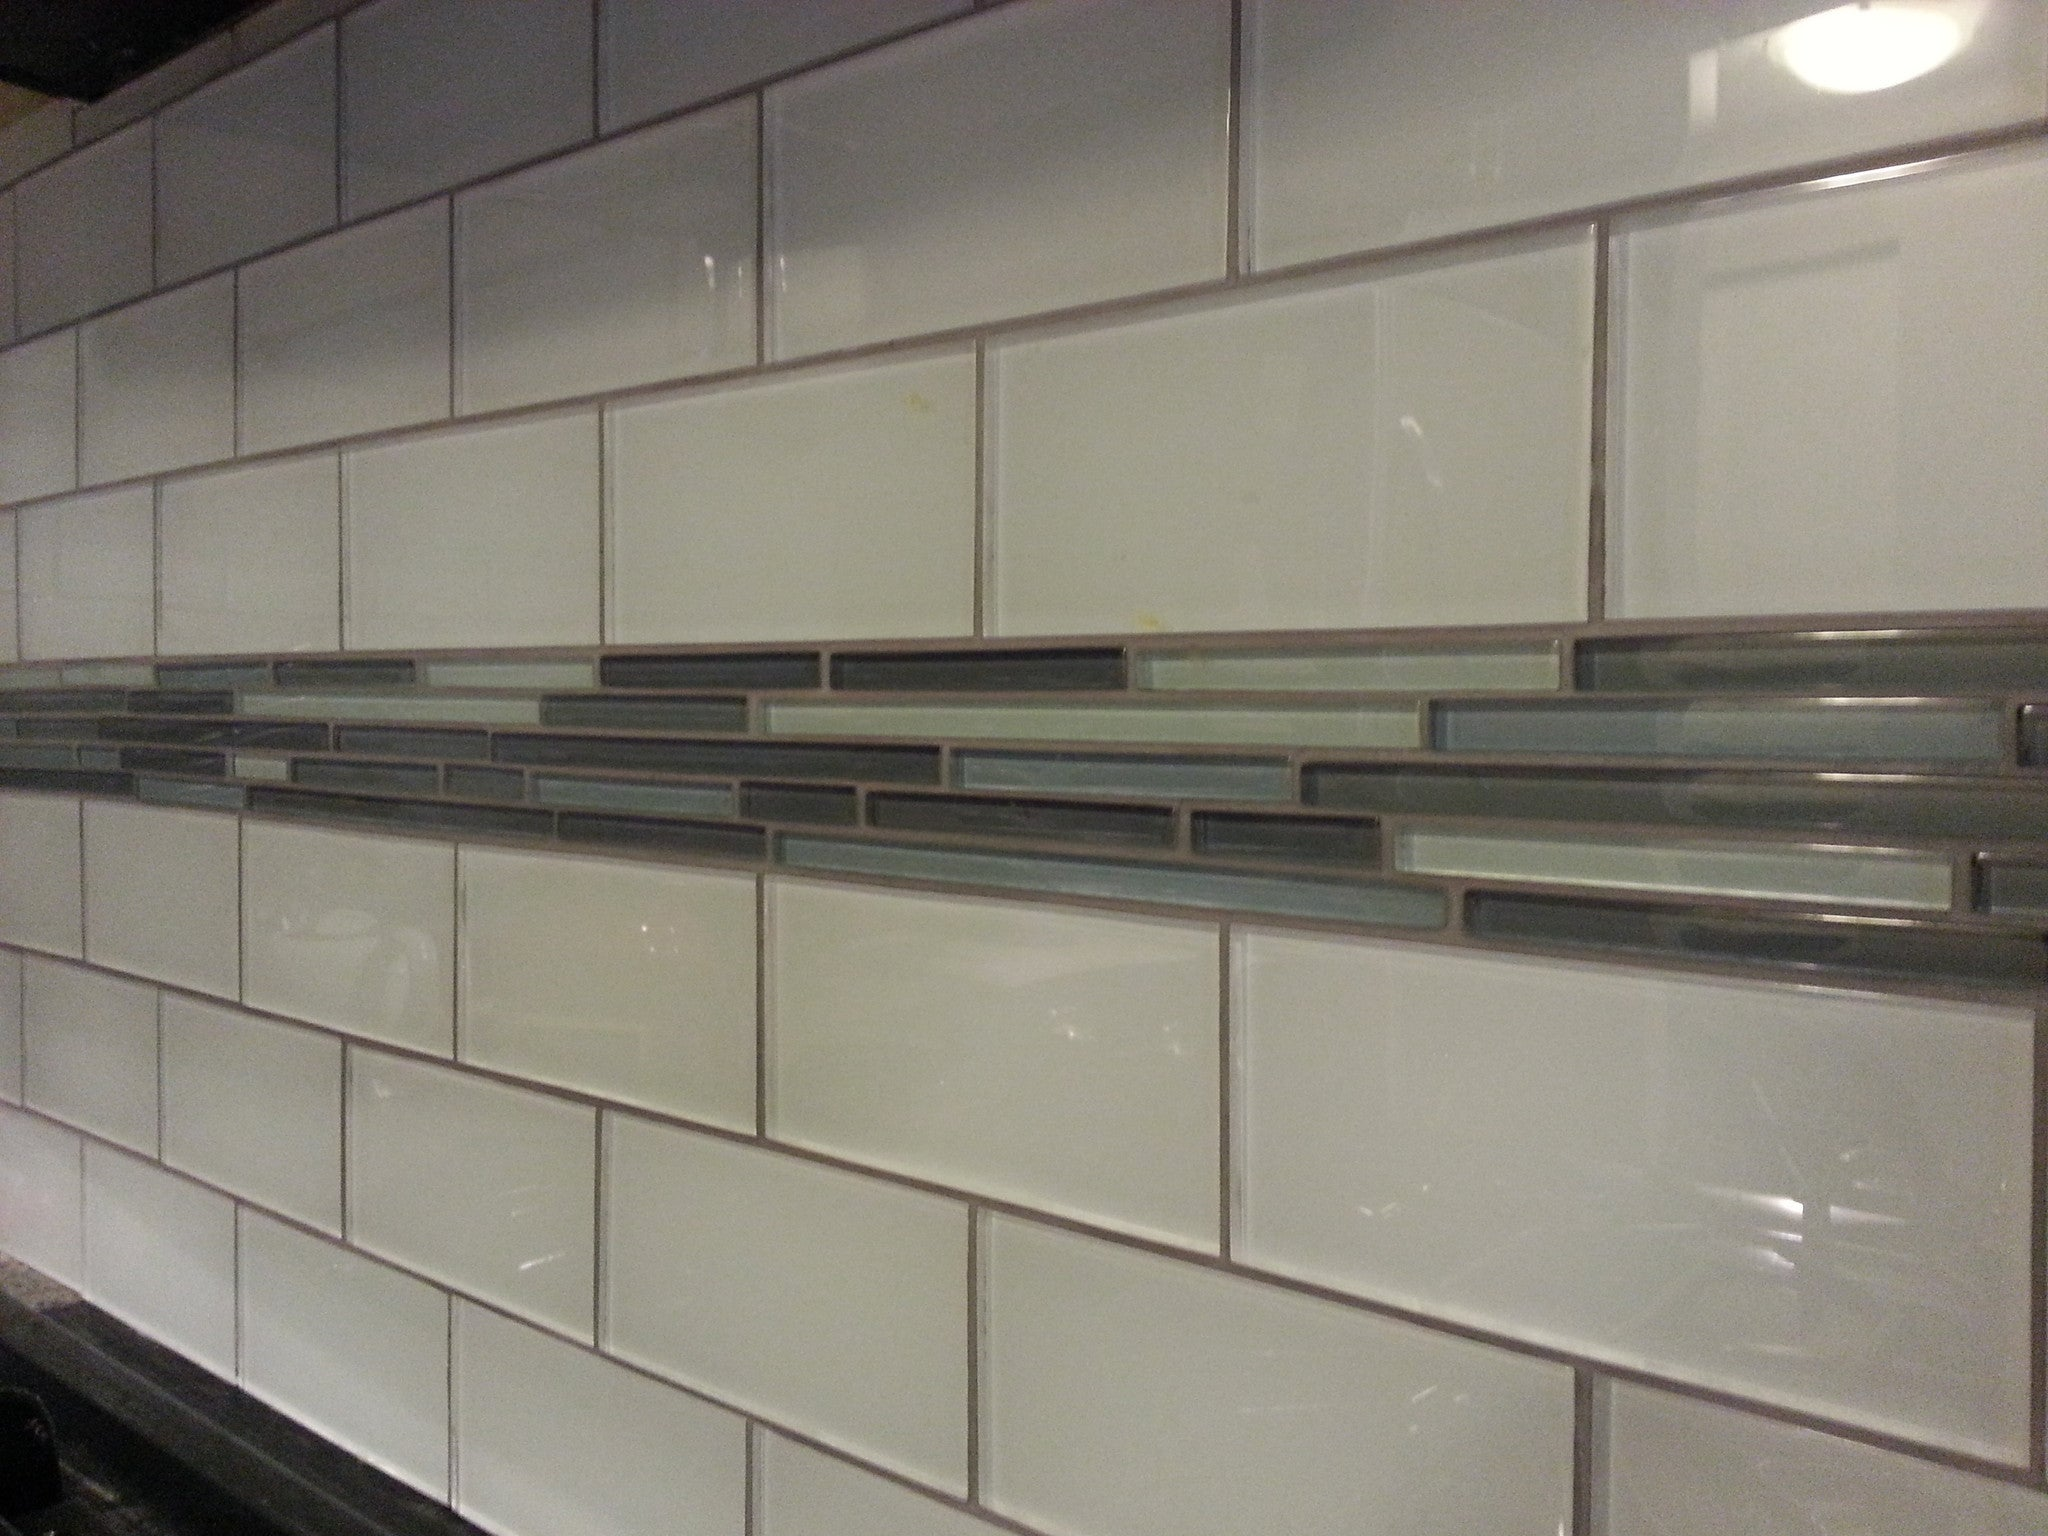 Holiday Kitchen Cabinets Snow White 3x6 Glass Subway Tiles Rocky Point Tile